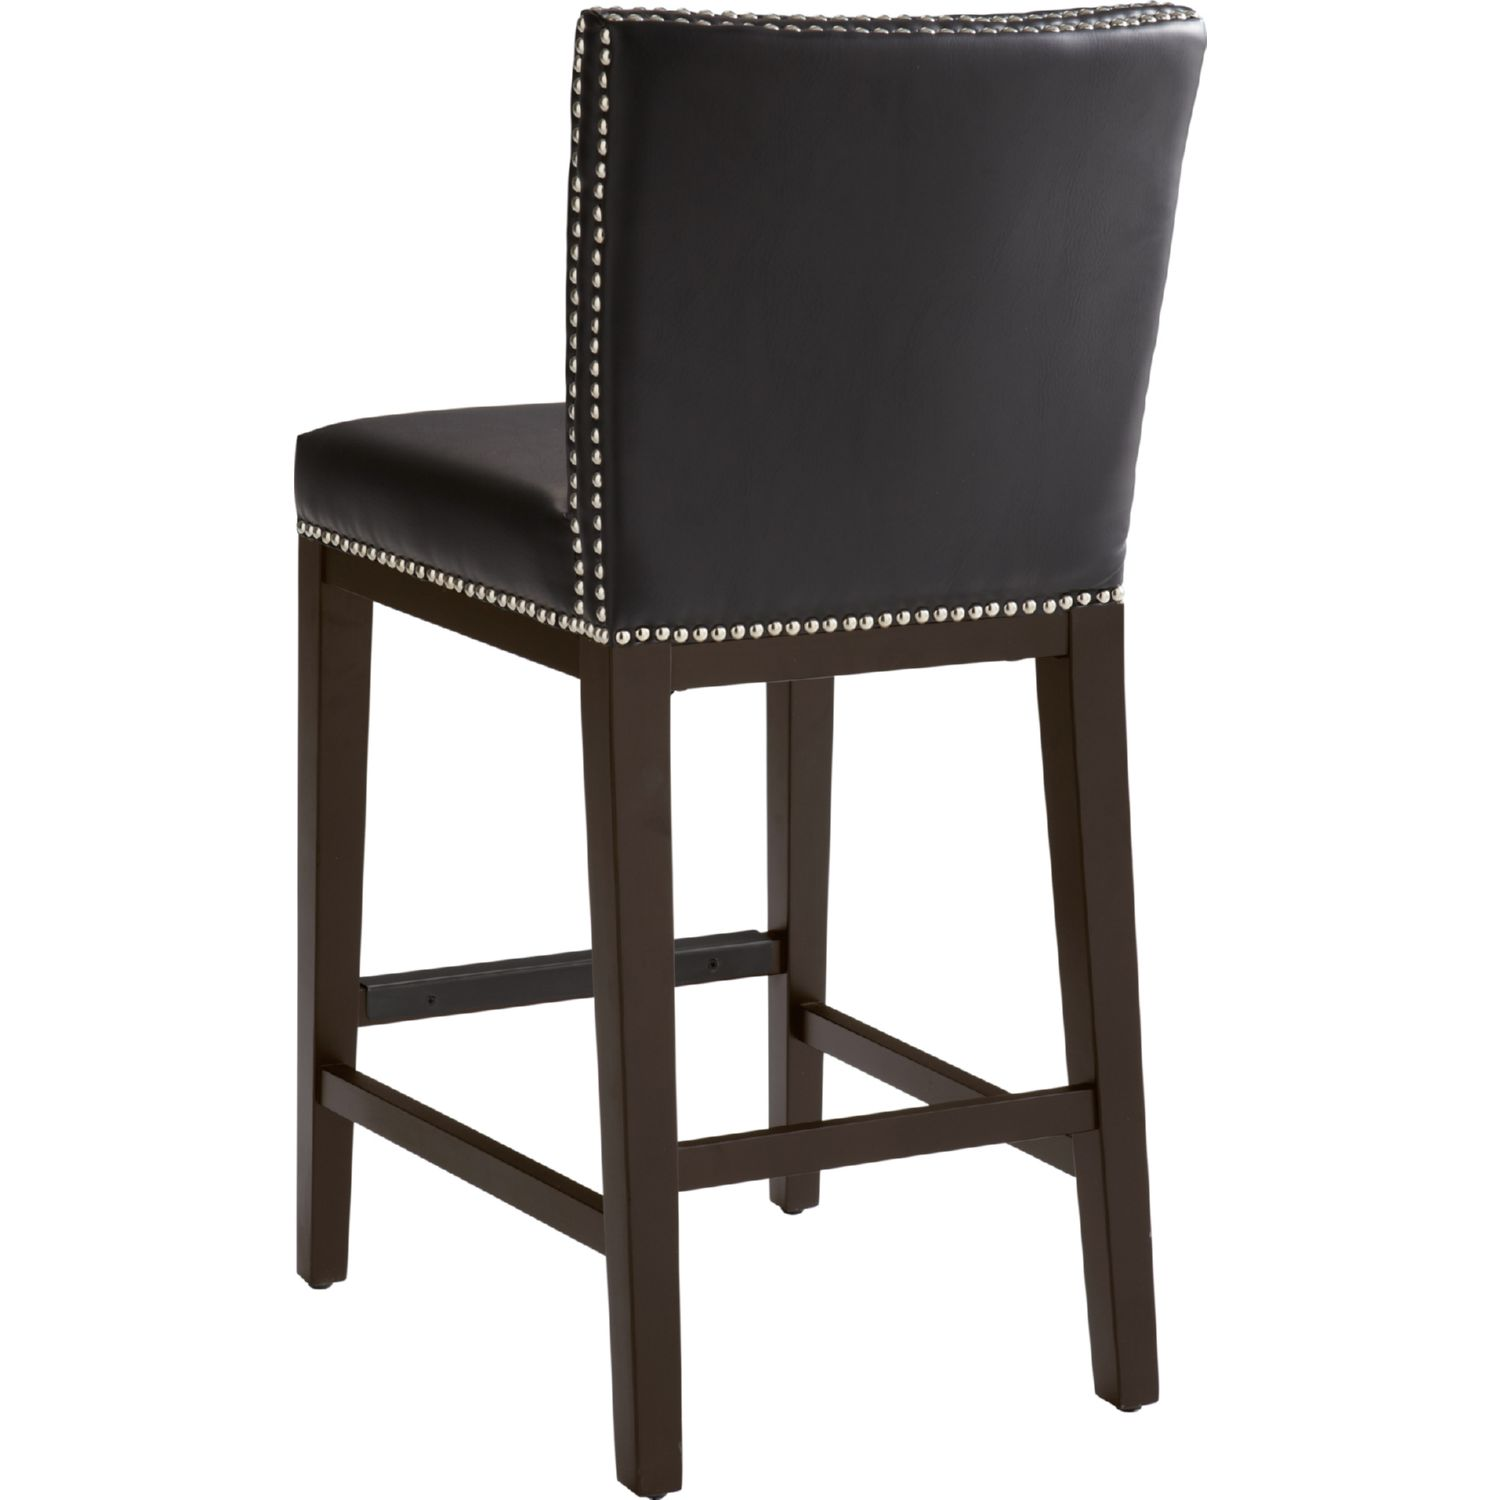 Sunpan 65871 Vintage Counter Height Stool In Brown Leather